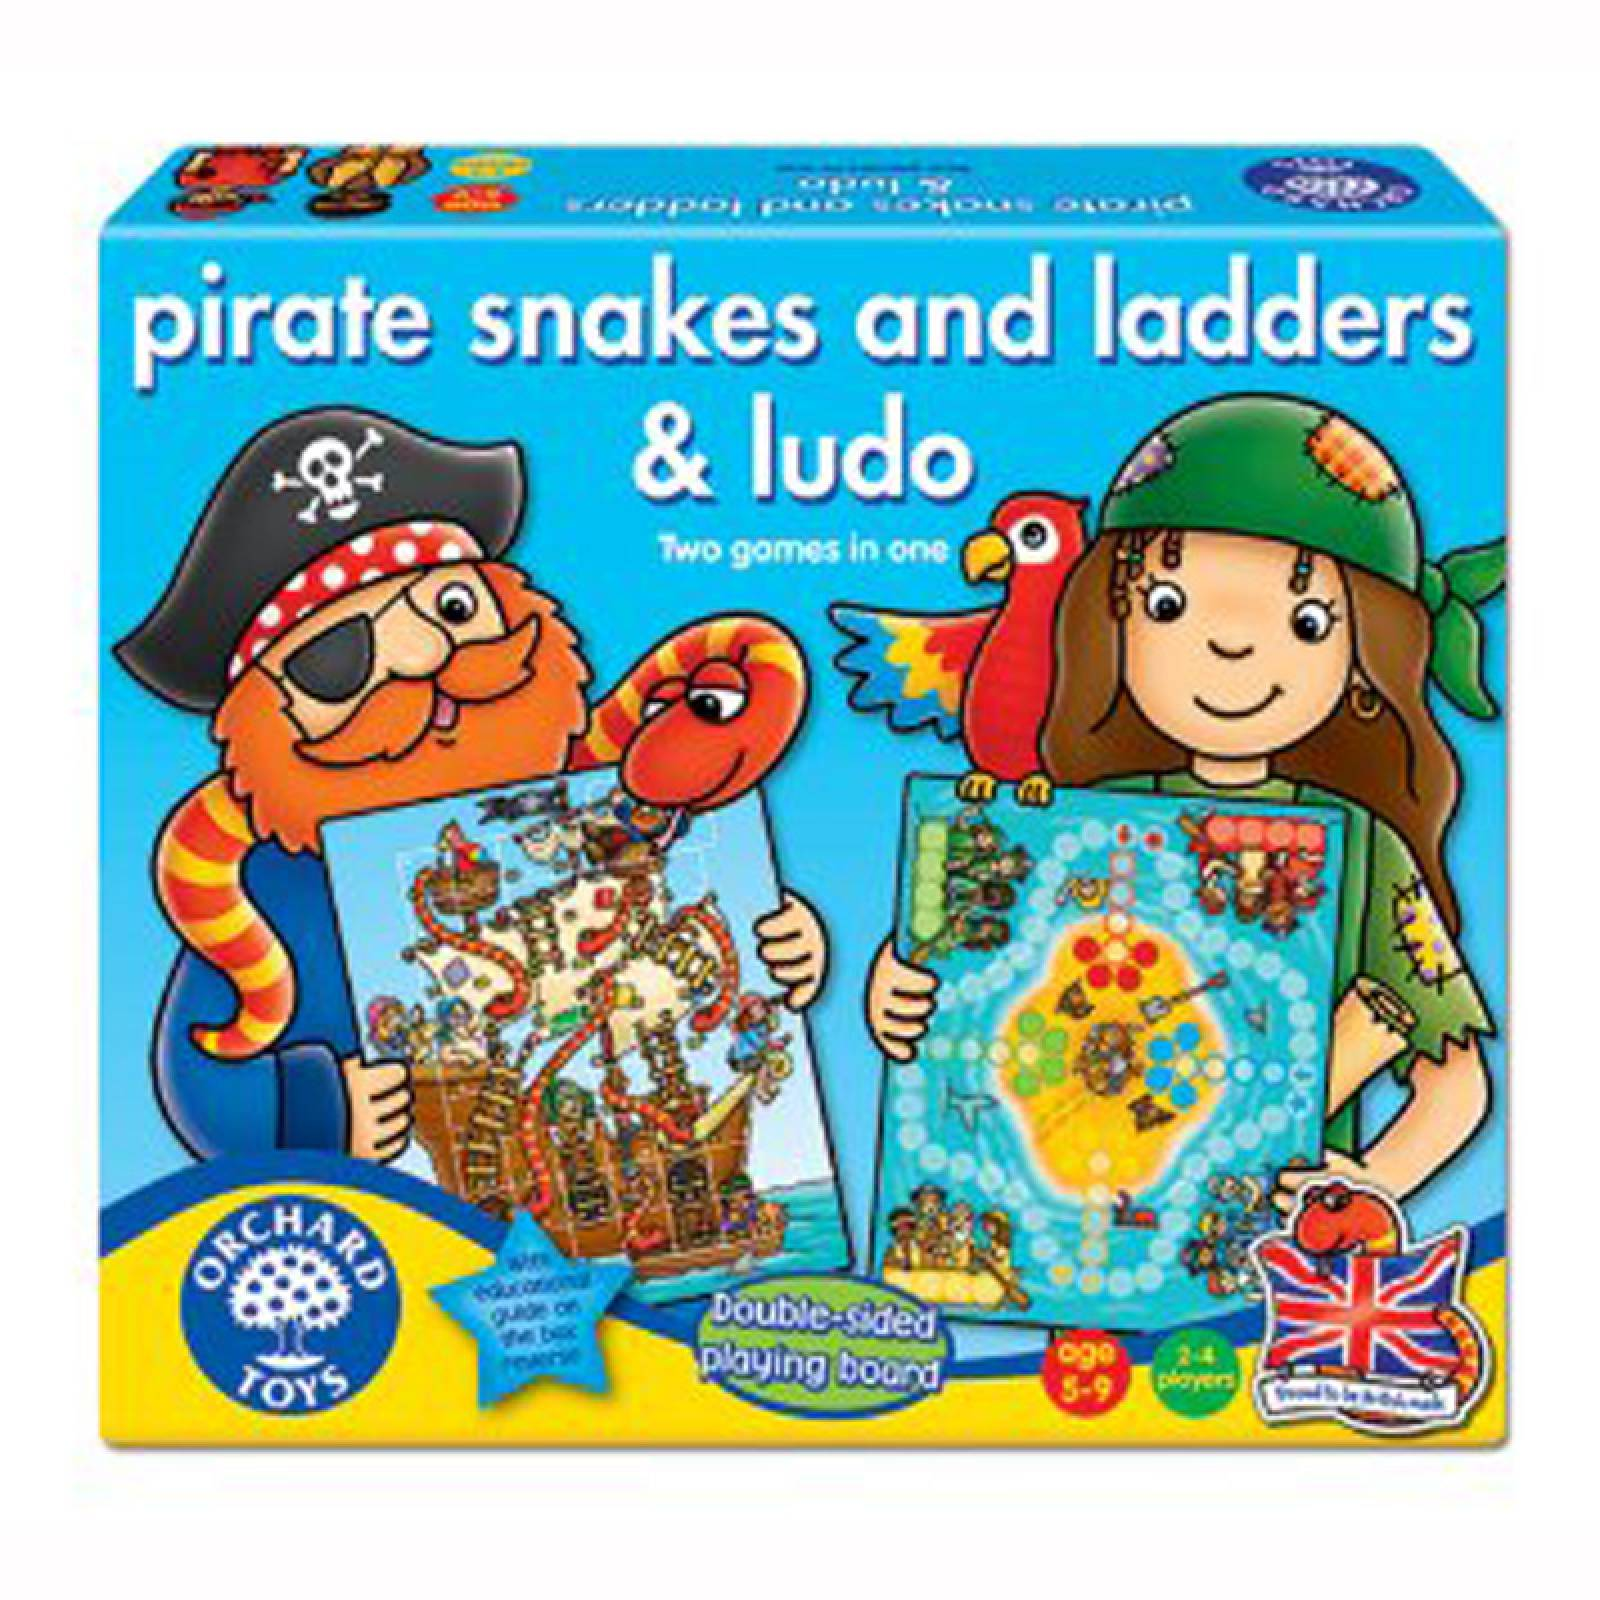 Pirate Snakes and Ladders Game by Orchard Toys 5+